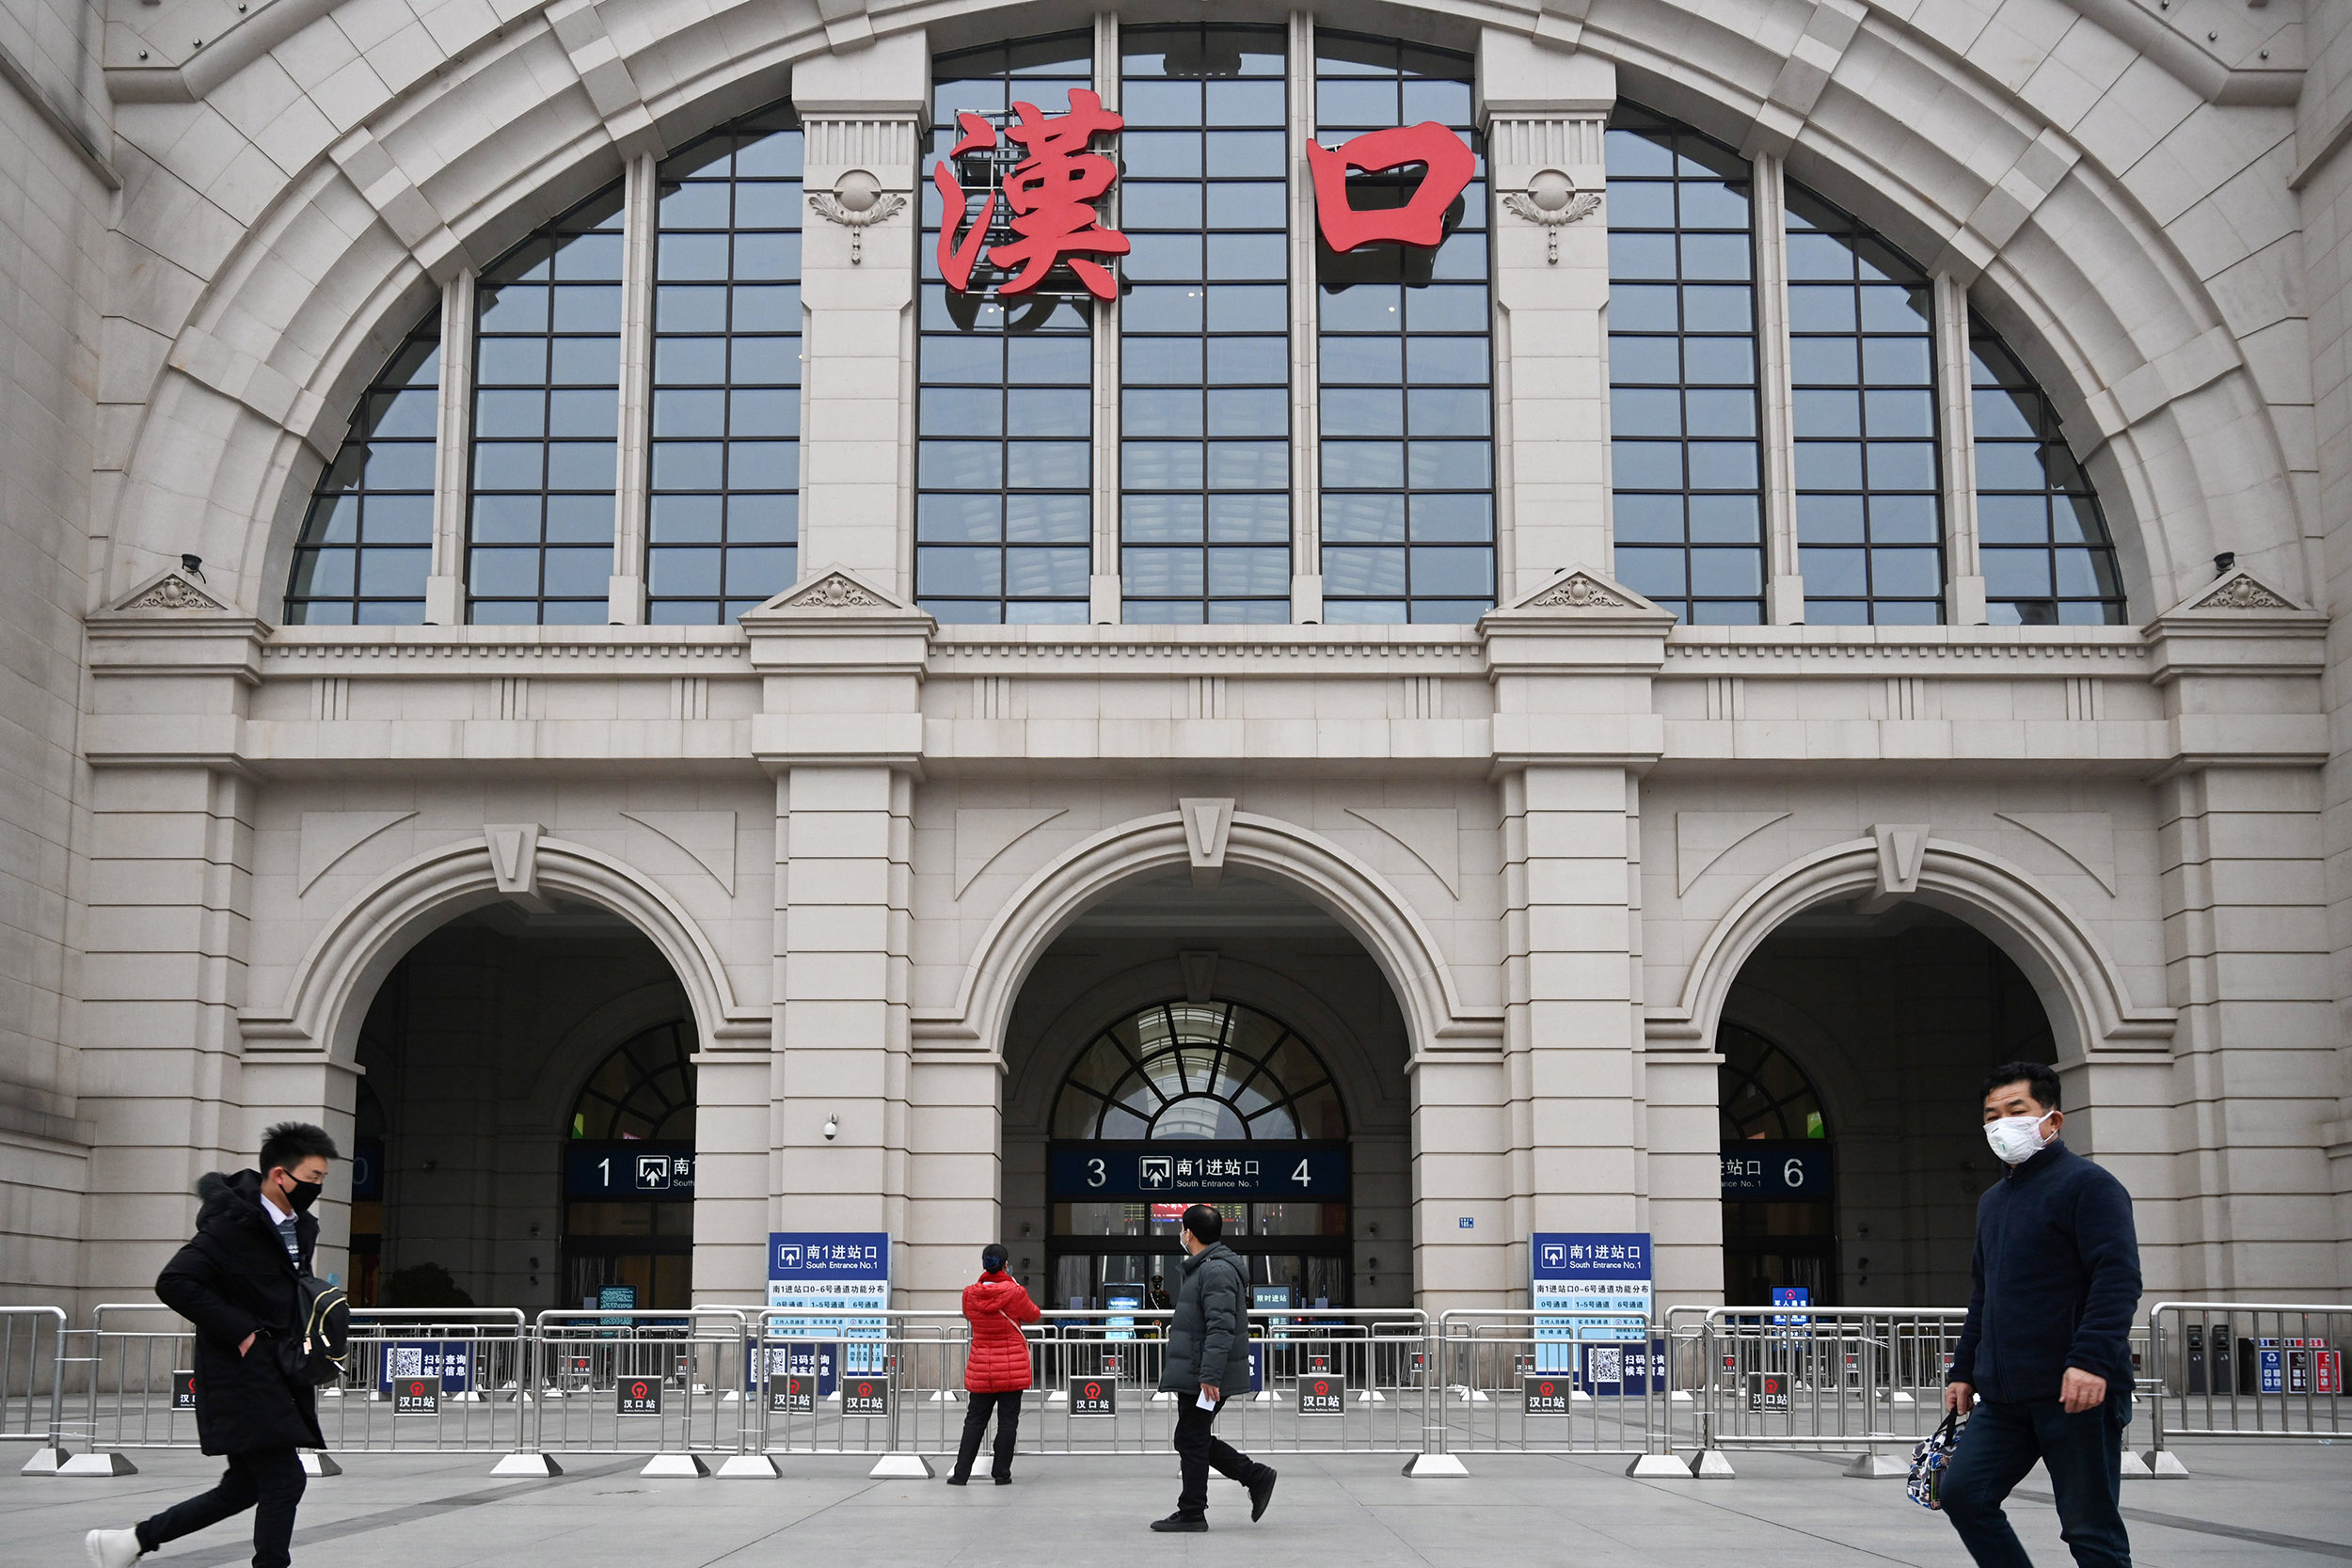 Image: People walk past the closed Hankou Railway Station after the city was locked down following the outbreak of a new coronavirus in Wuhan